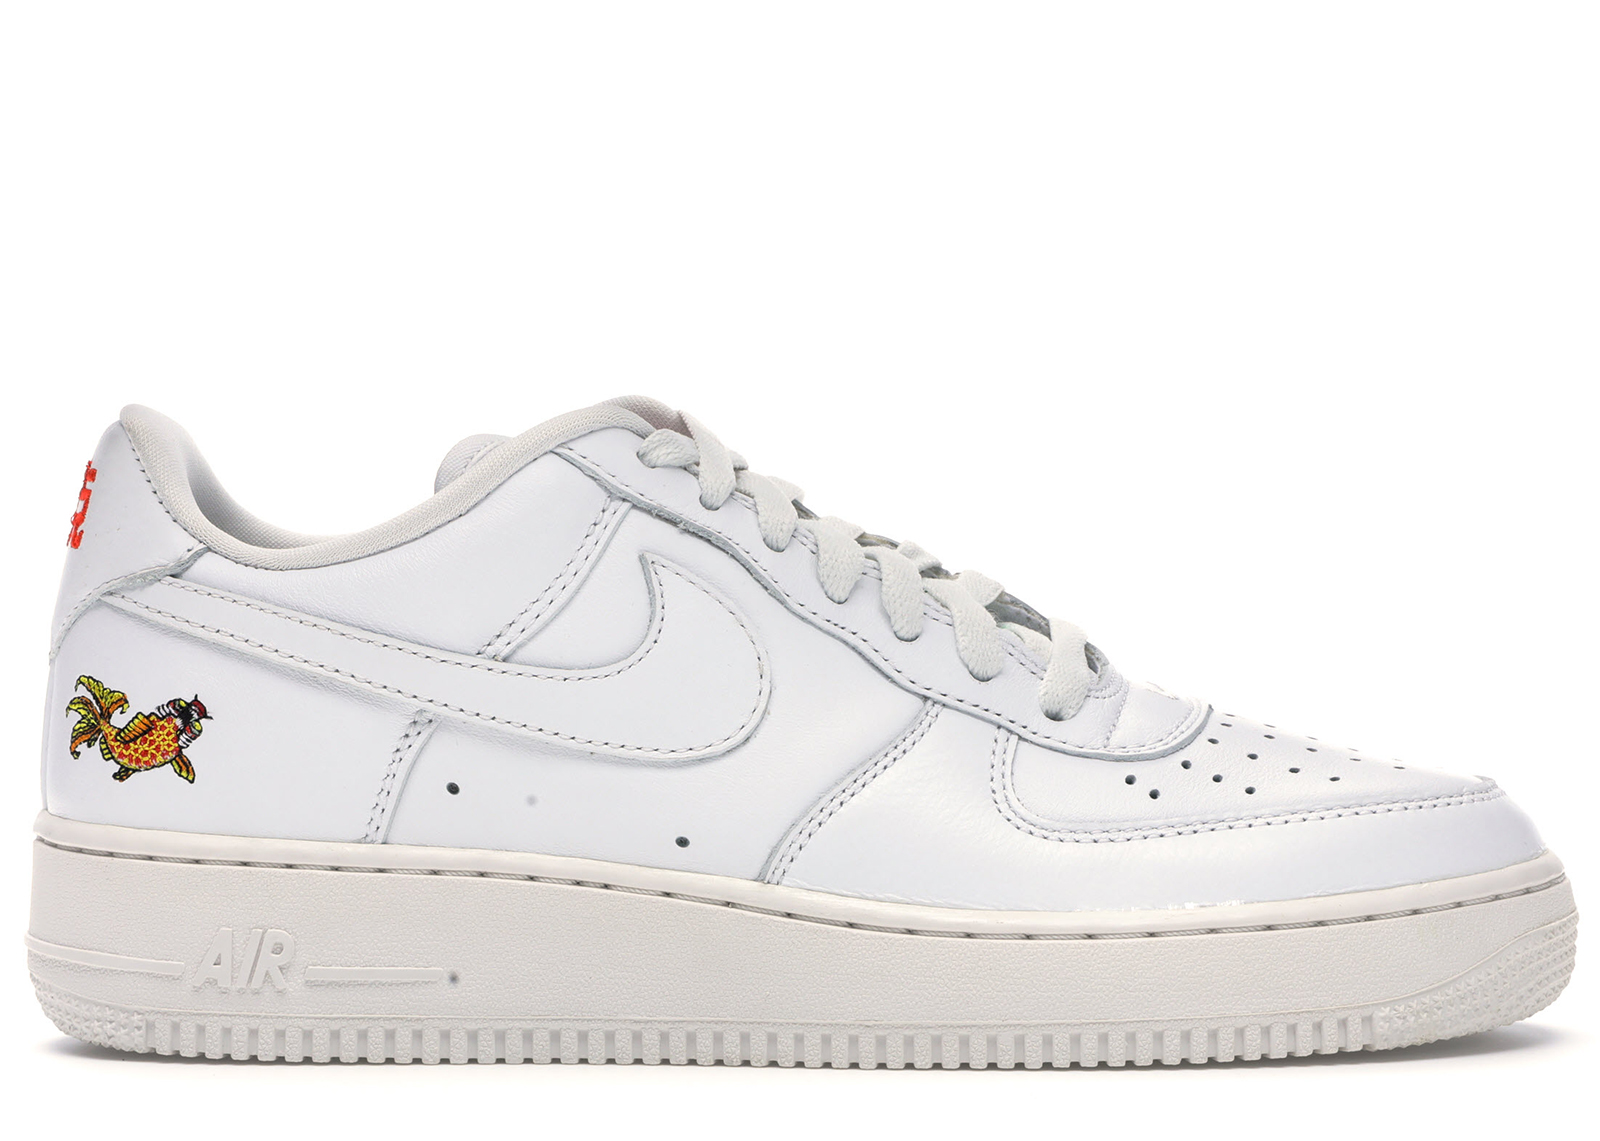 Air Force 1 Low QS Nai Ke